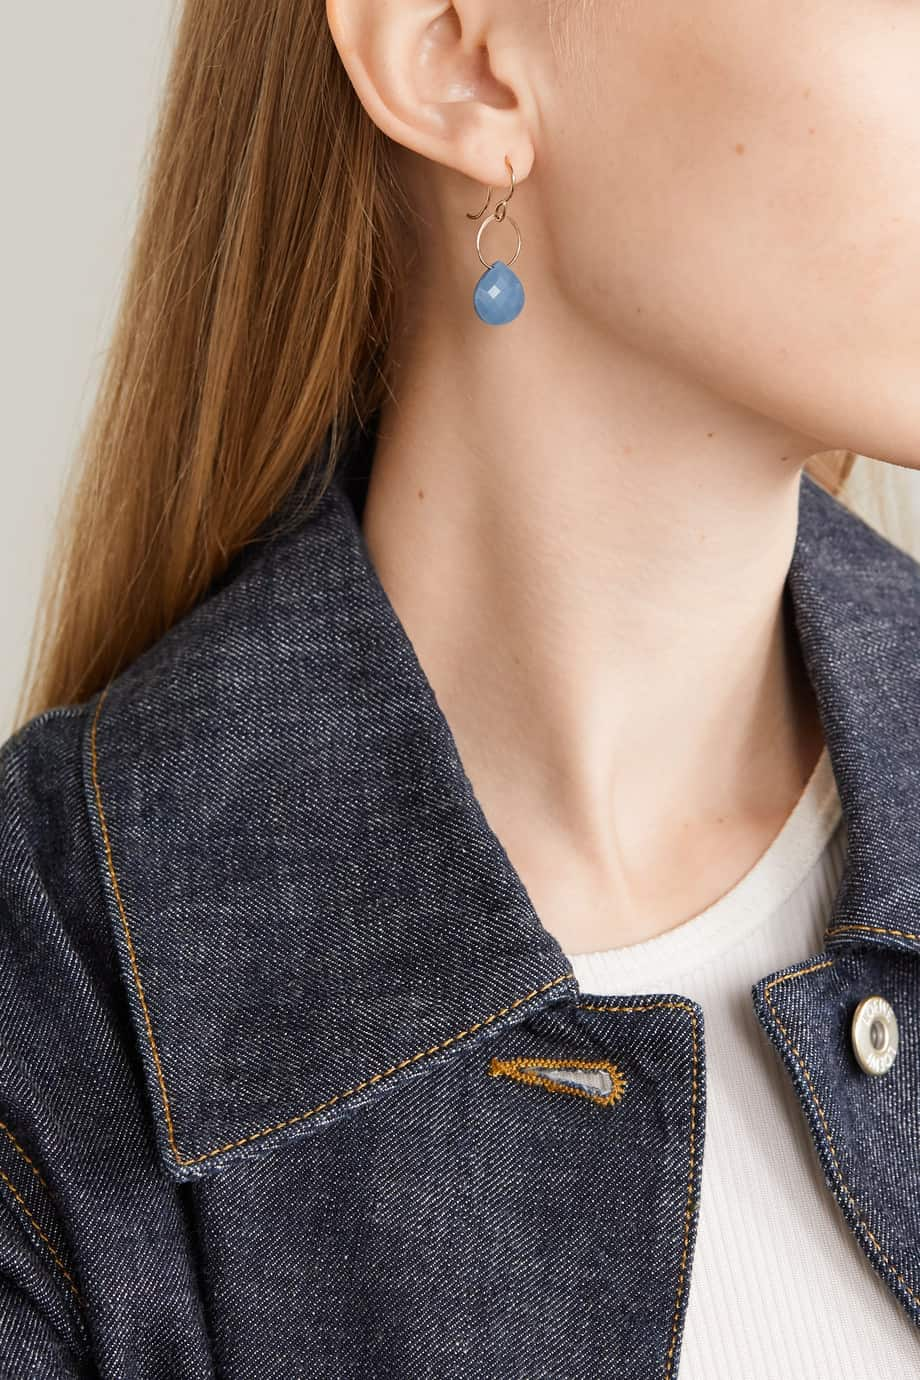 Ethical Fine Jewelry Brands